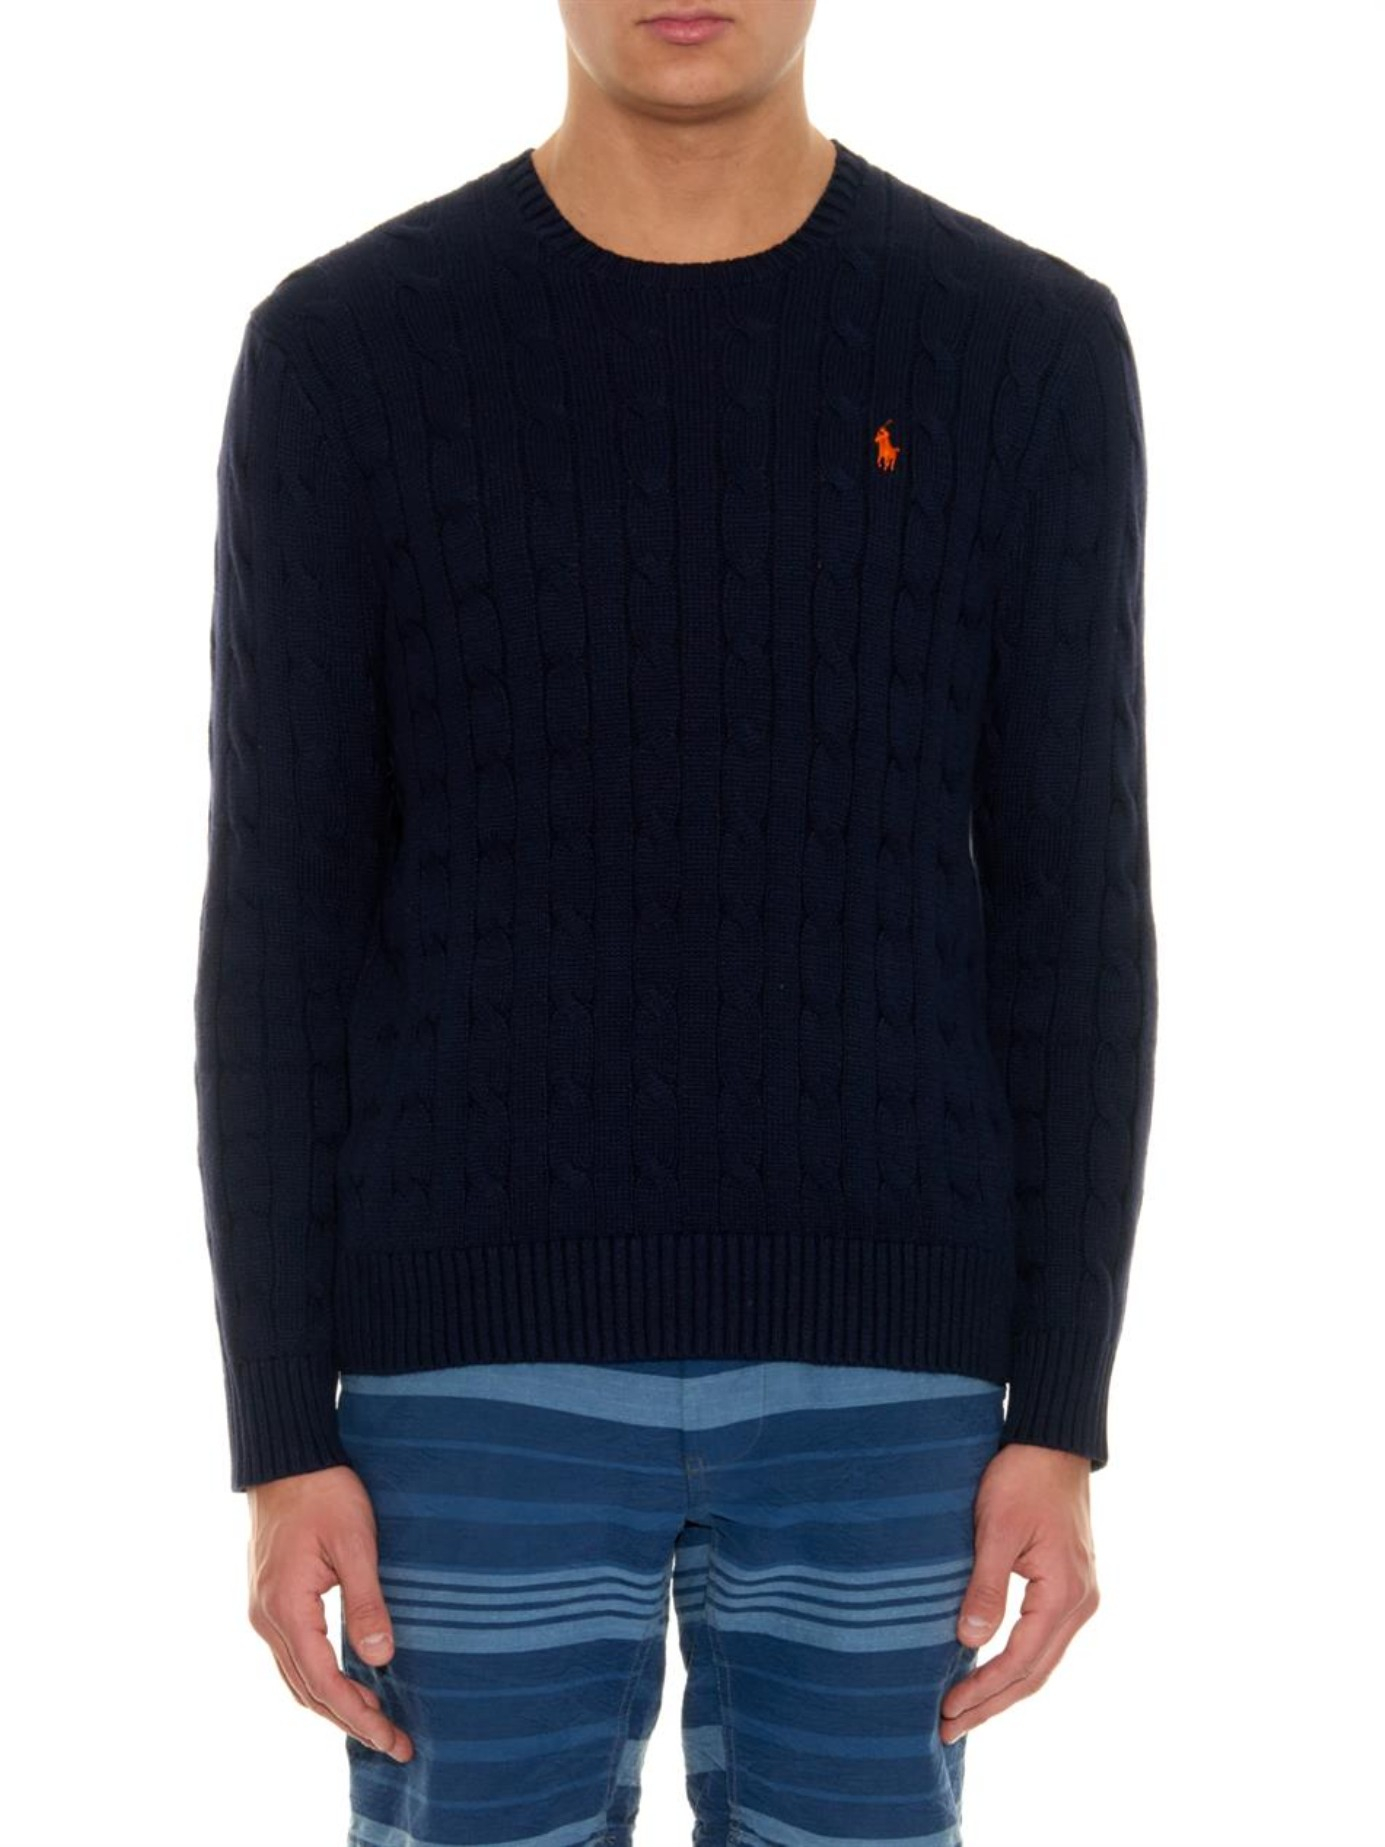 Polo ralph lauren Cable-Knit Cotton Sweater in Blue for Men | Lyst